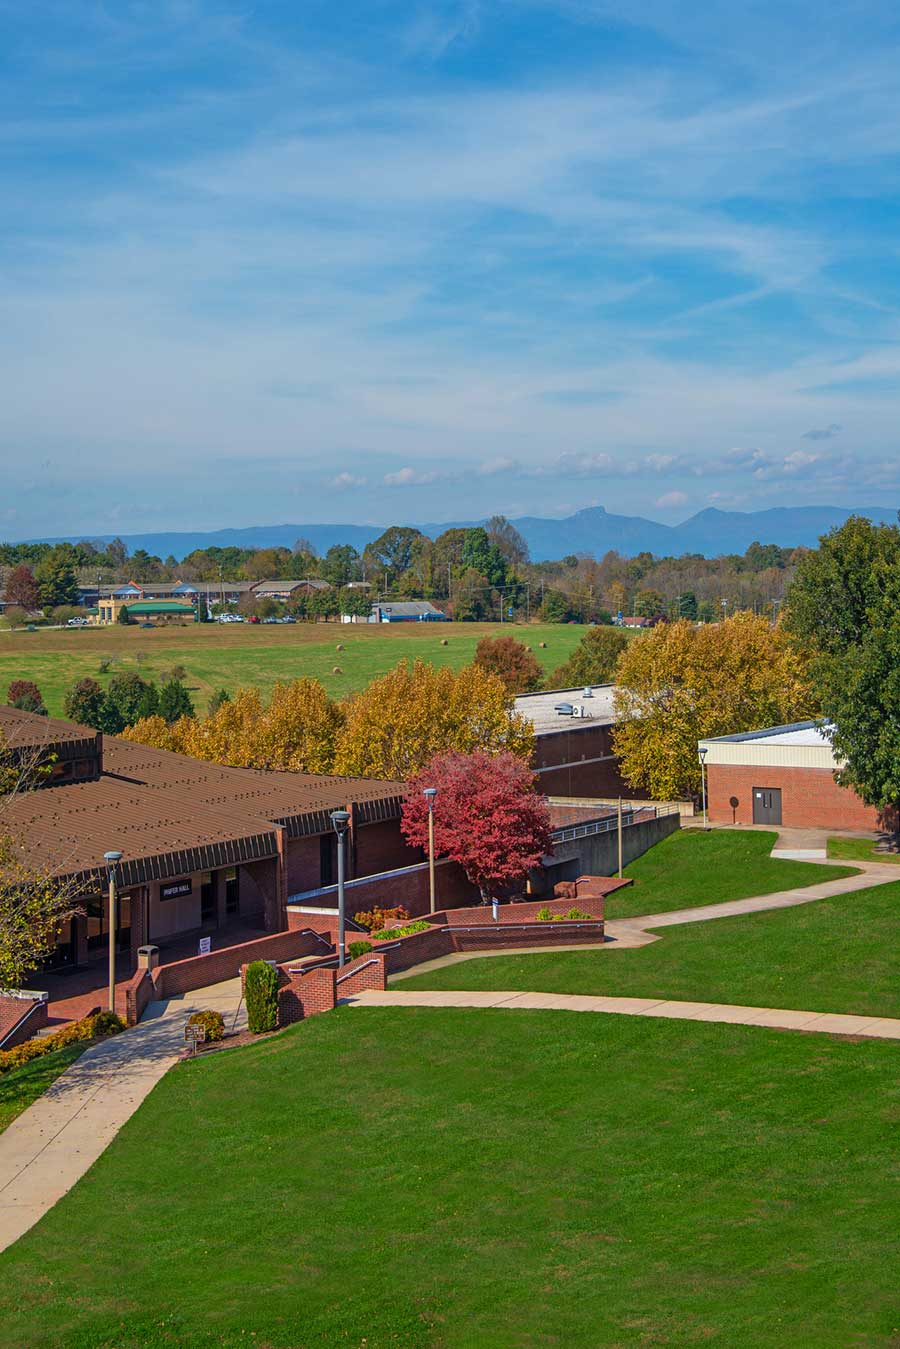 WPCC's Main Campus in fall